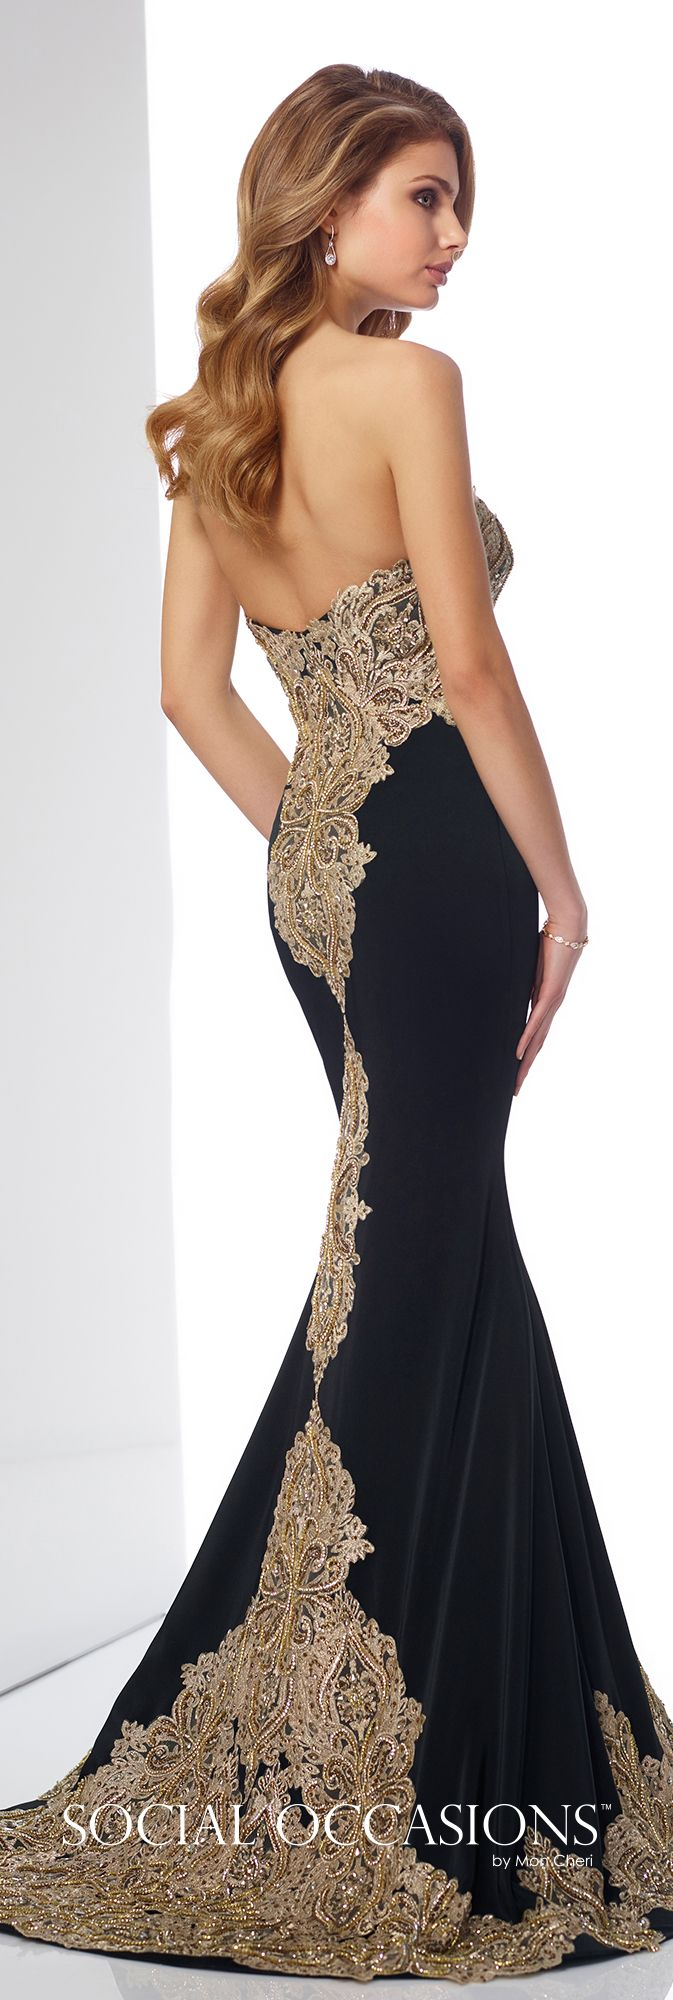 brand logo 217831  Strapless crepe and metallic lace fit and flare gown with sweetheart neckline, dropped waist bodice features hand-beaded lace that trails down back skirt, matching scalloped lace hemline, sweep train. Matching shawl and removable lace straps included.